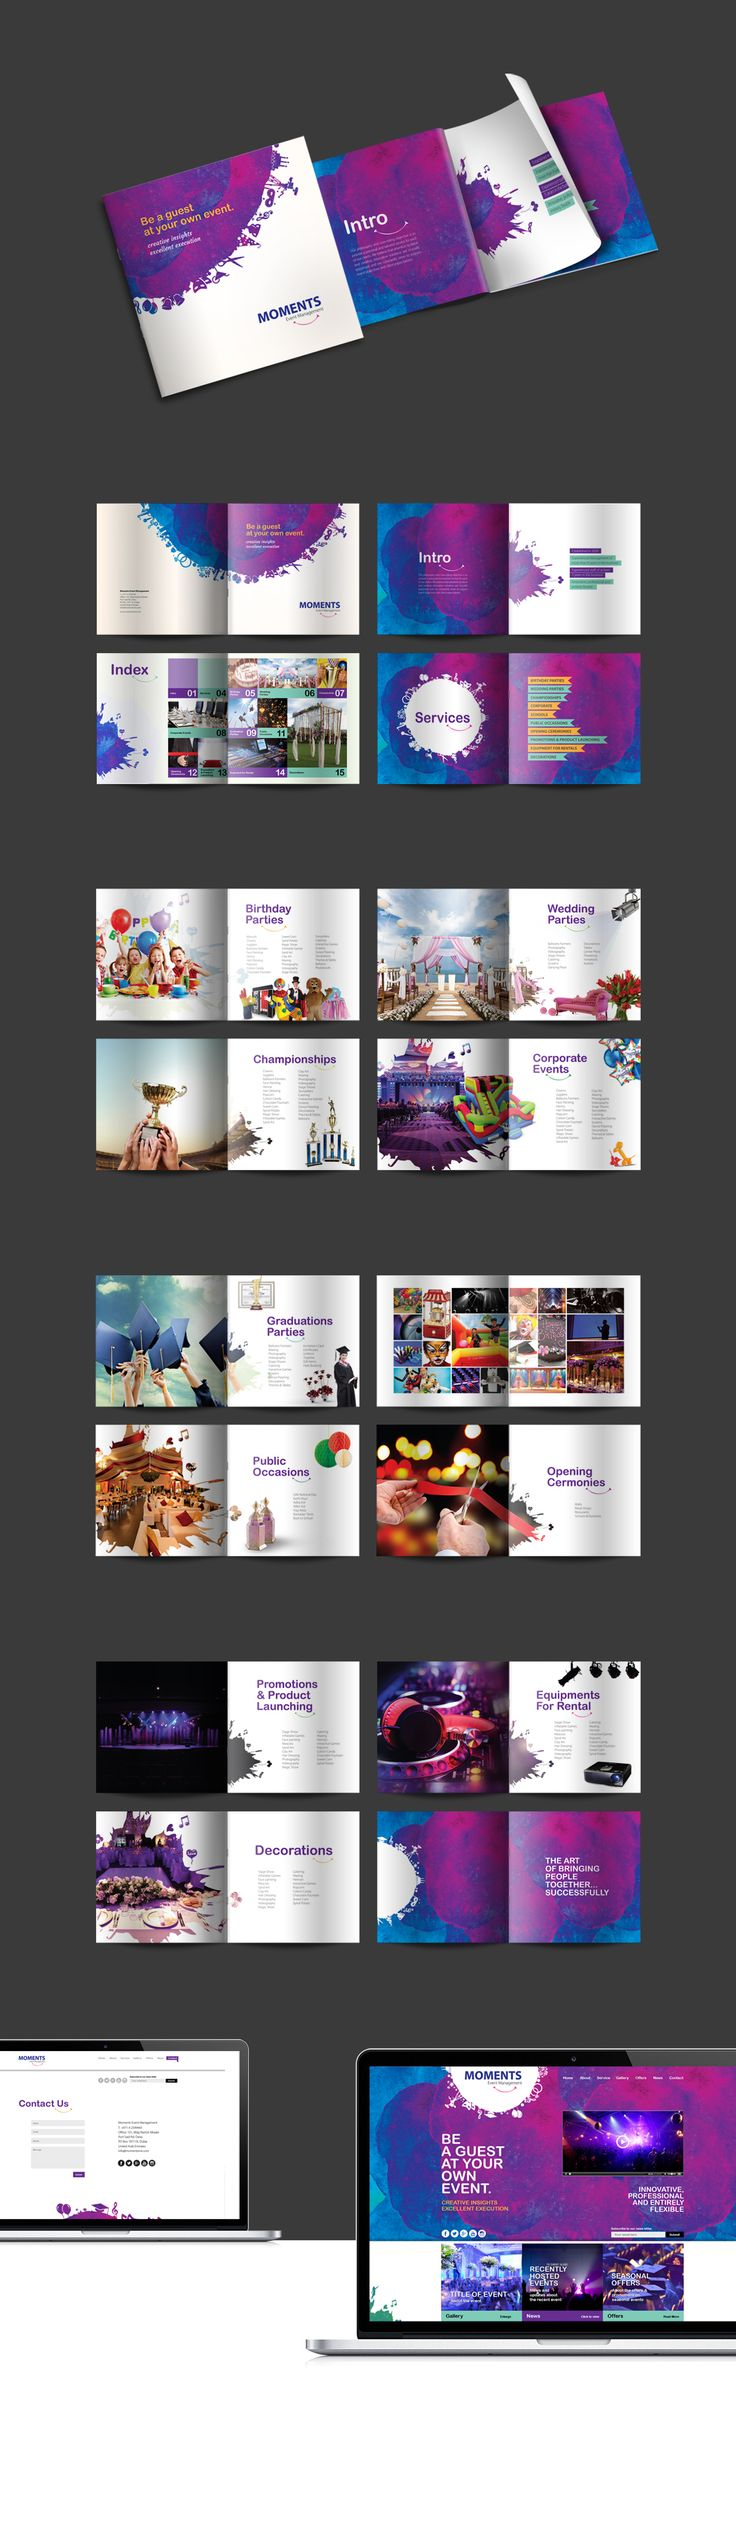 Brochure design created for an event management company based in Dubai.